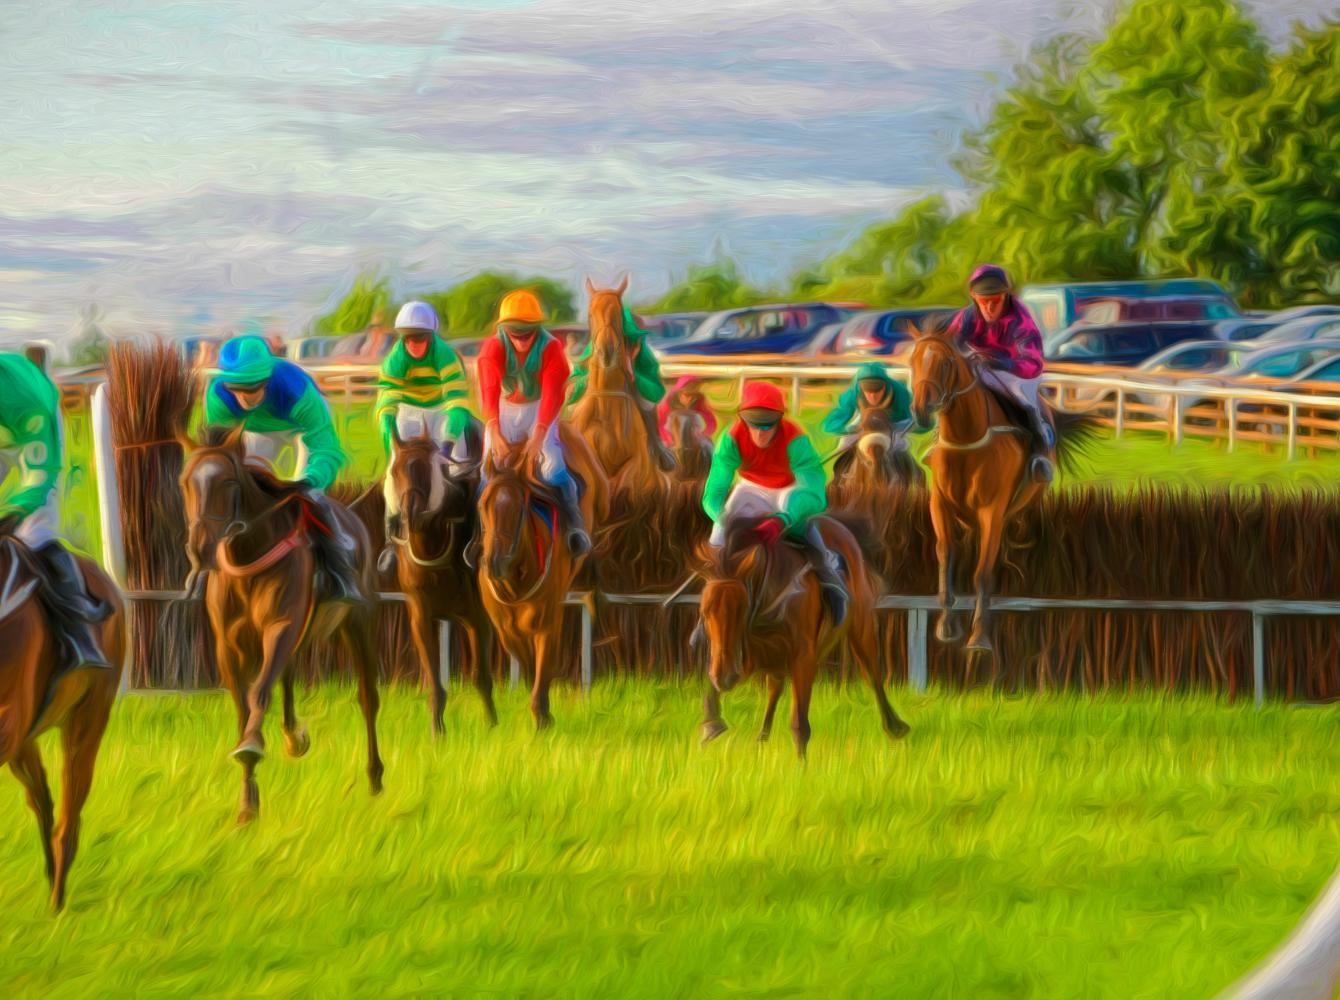 A painting of a Point-to-point race